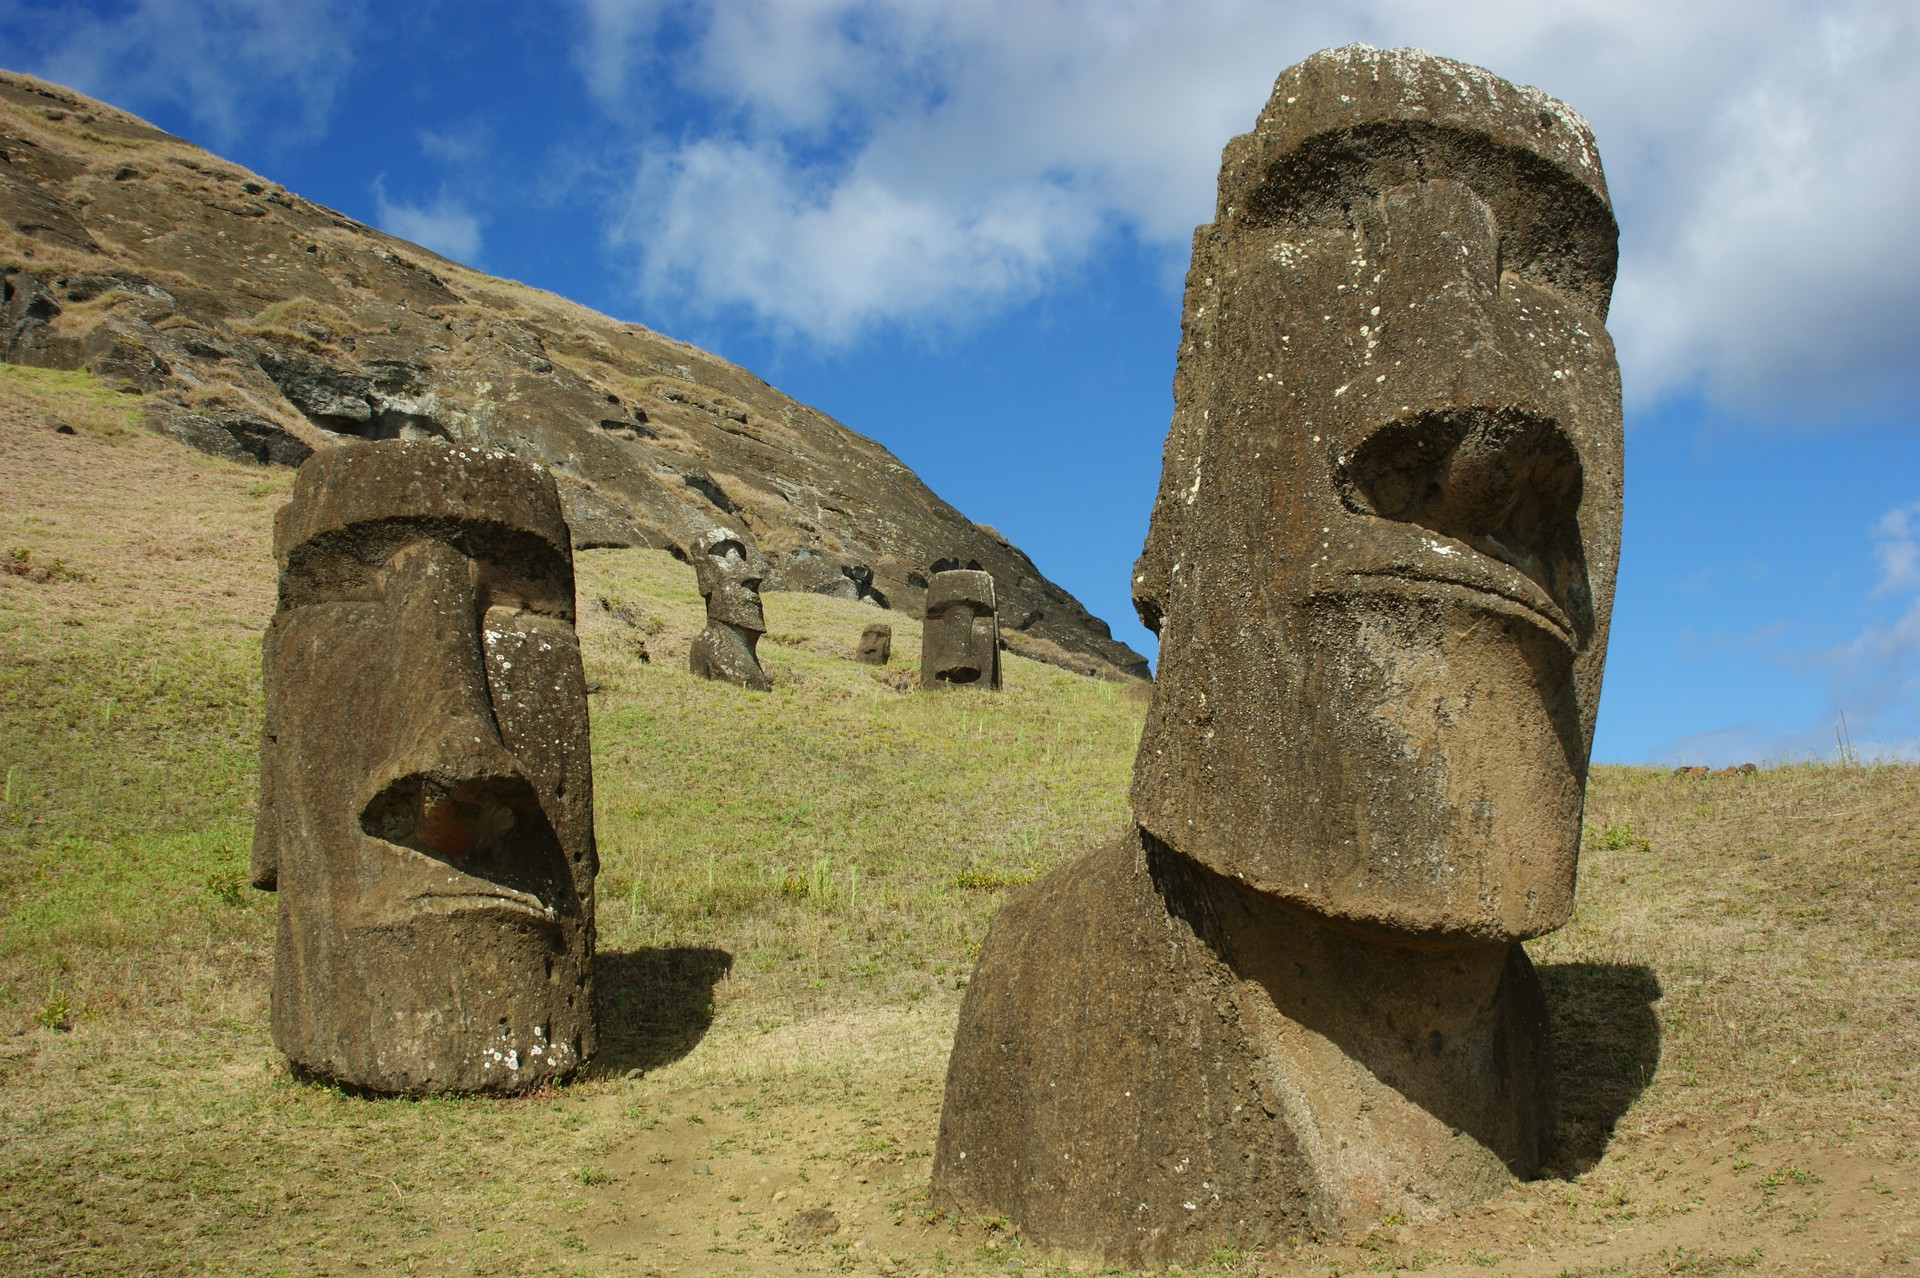 The giant stone figures of Easter Island